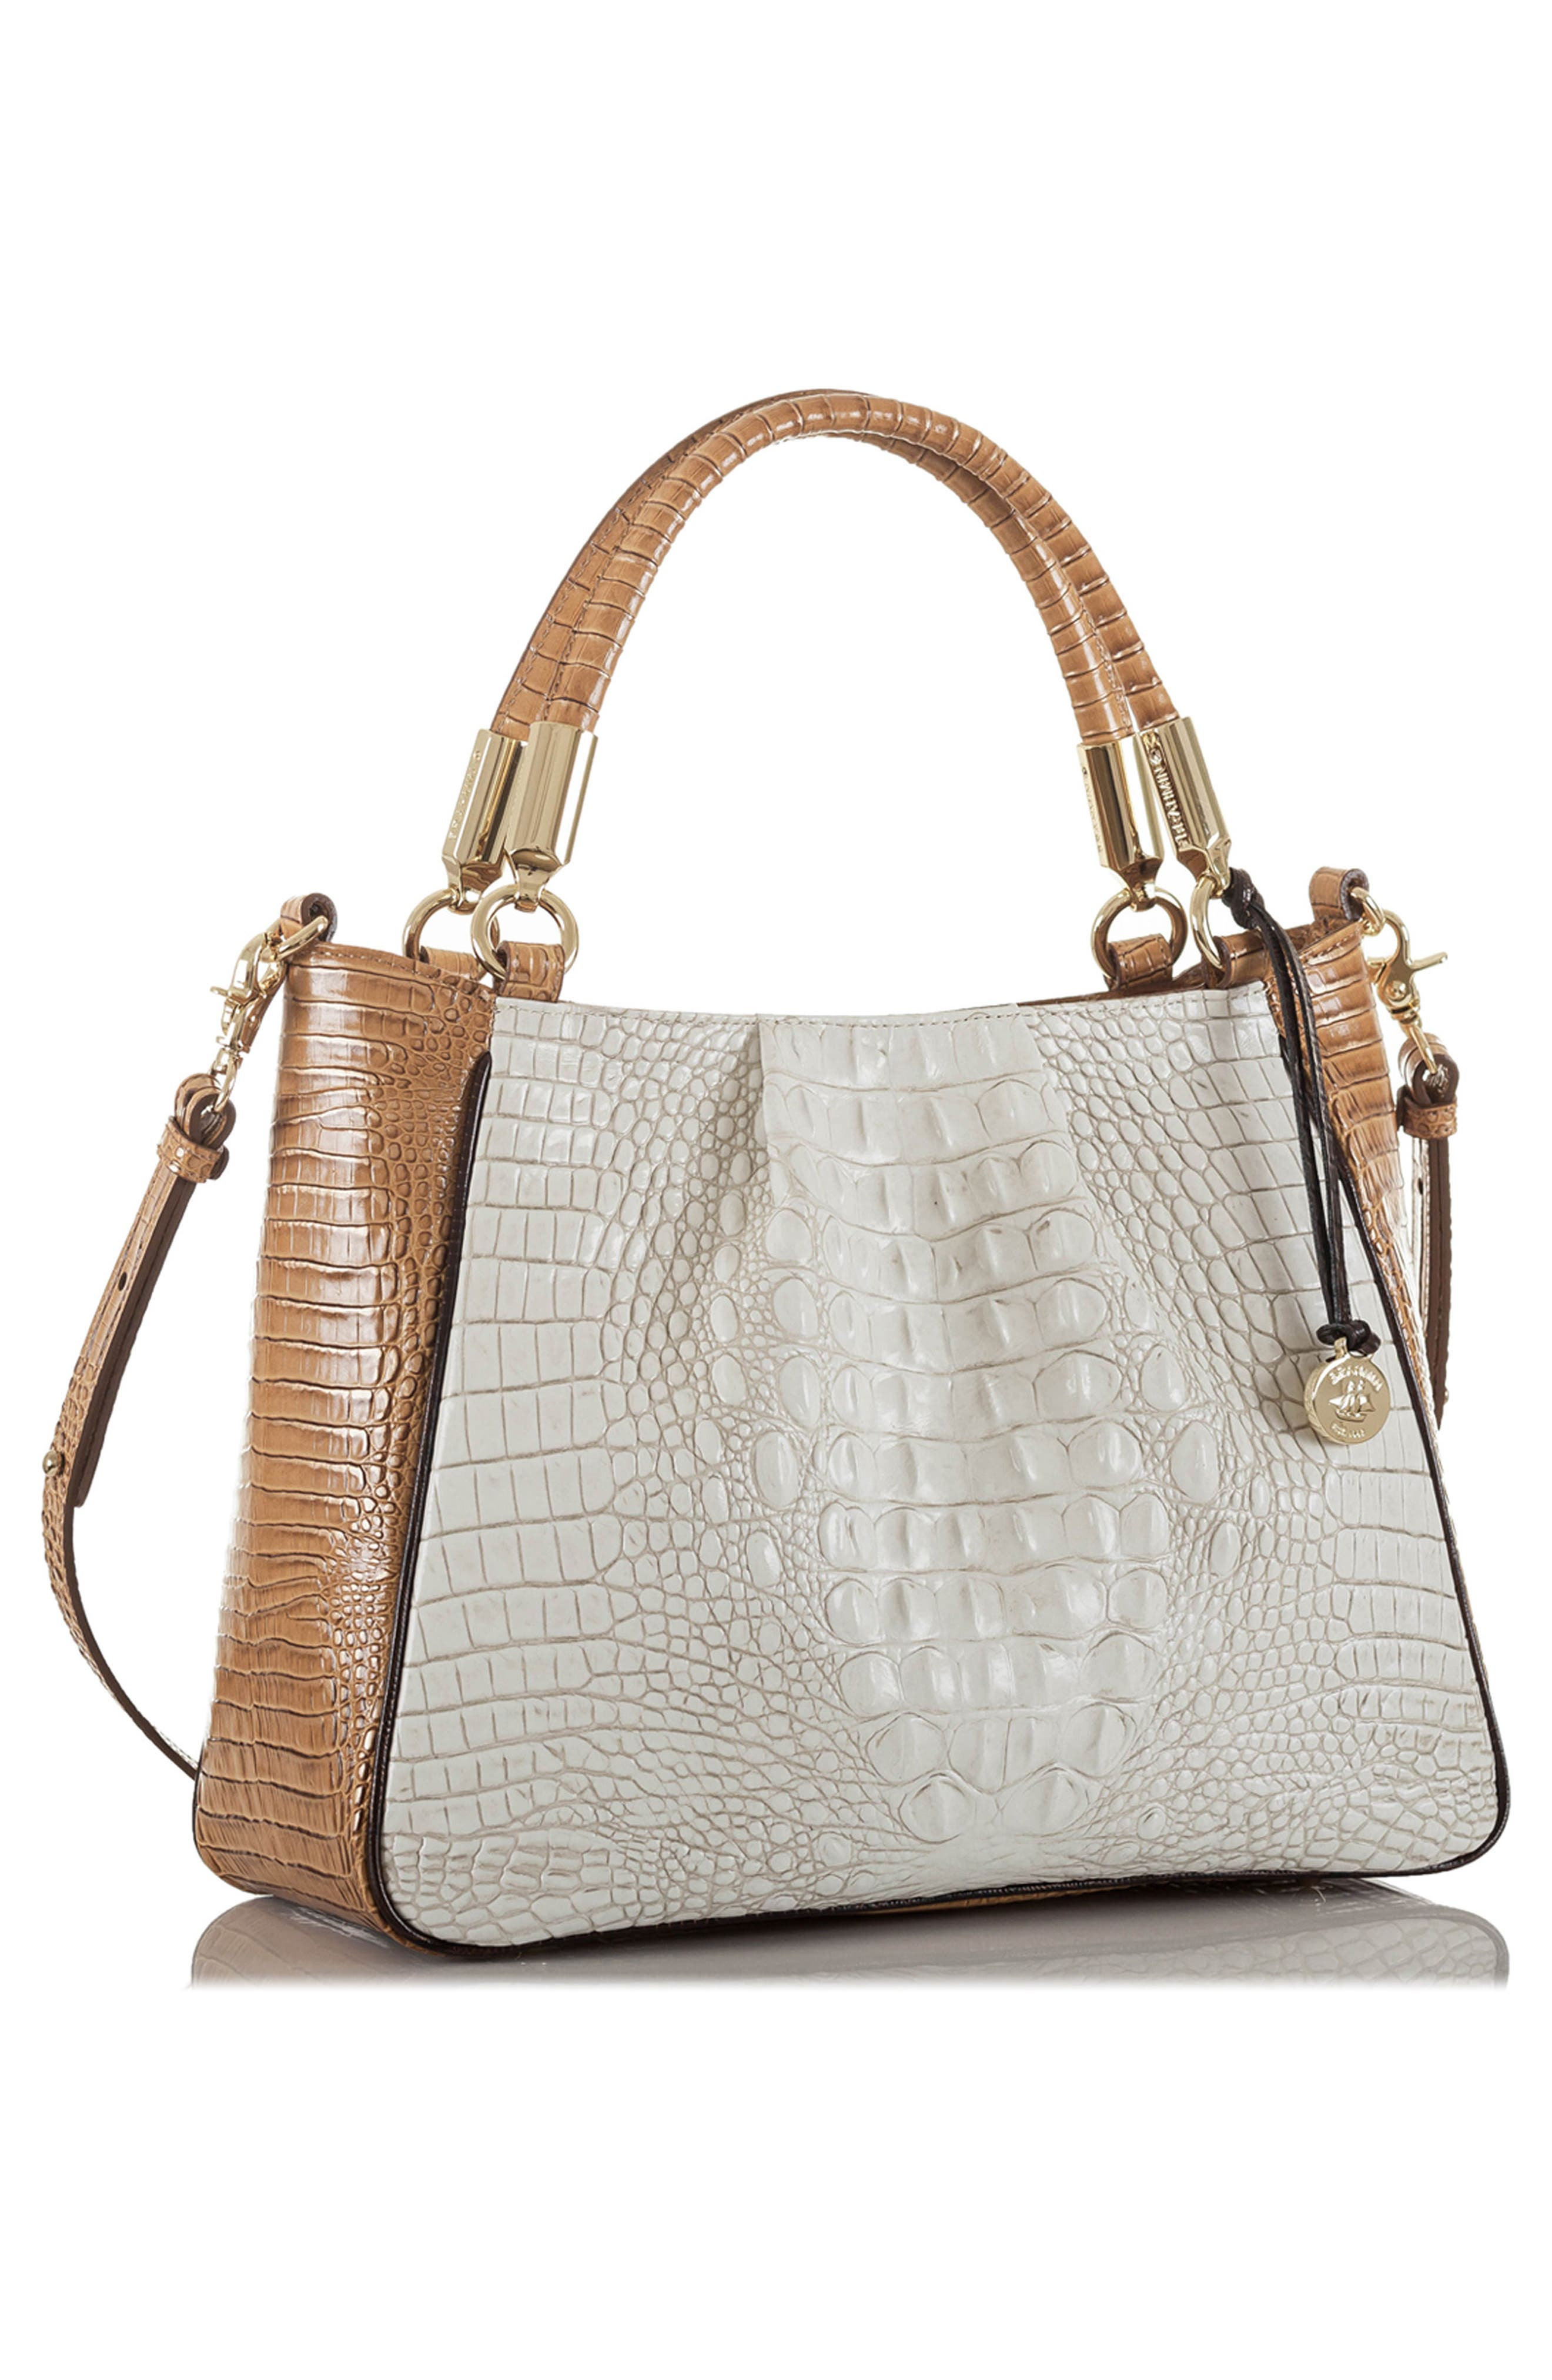 Ruby Croc Embossed Leather Satchel,                             Alternate thumbnail 4, color,                             100